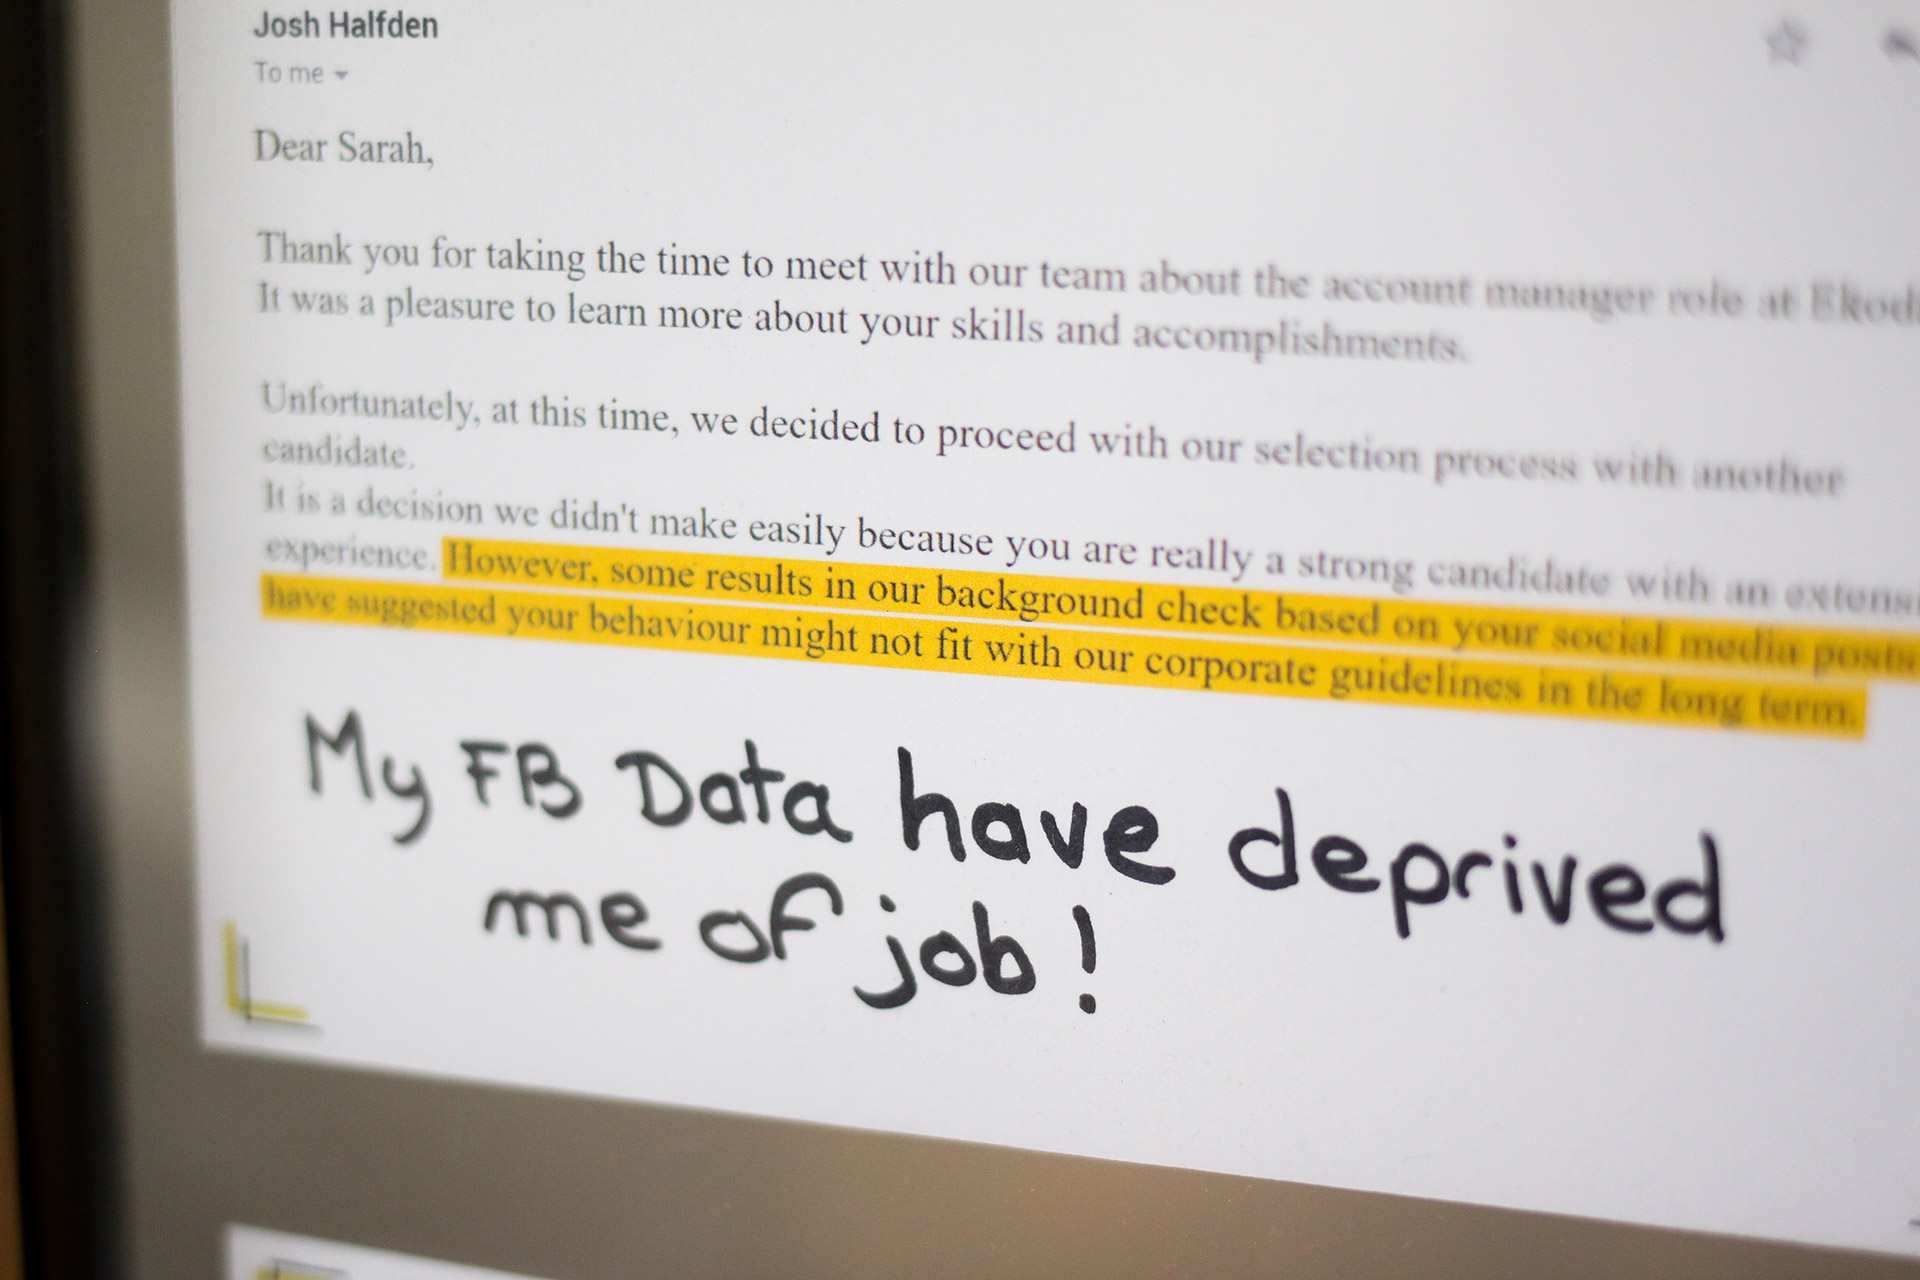 A close-up on a card of the anti-memorial: a rejection email for a job application due to a background check on social media